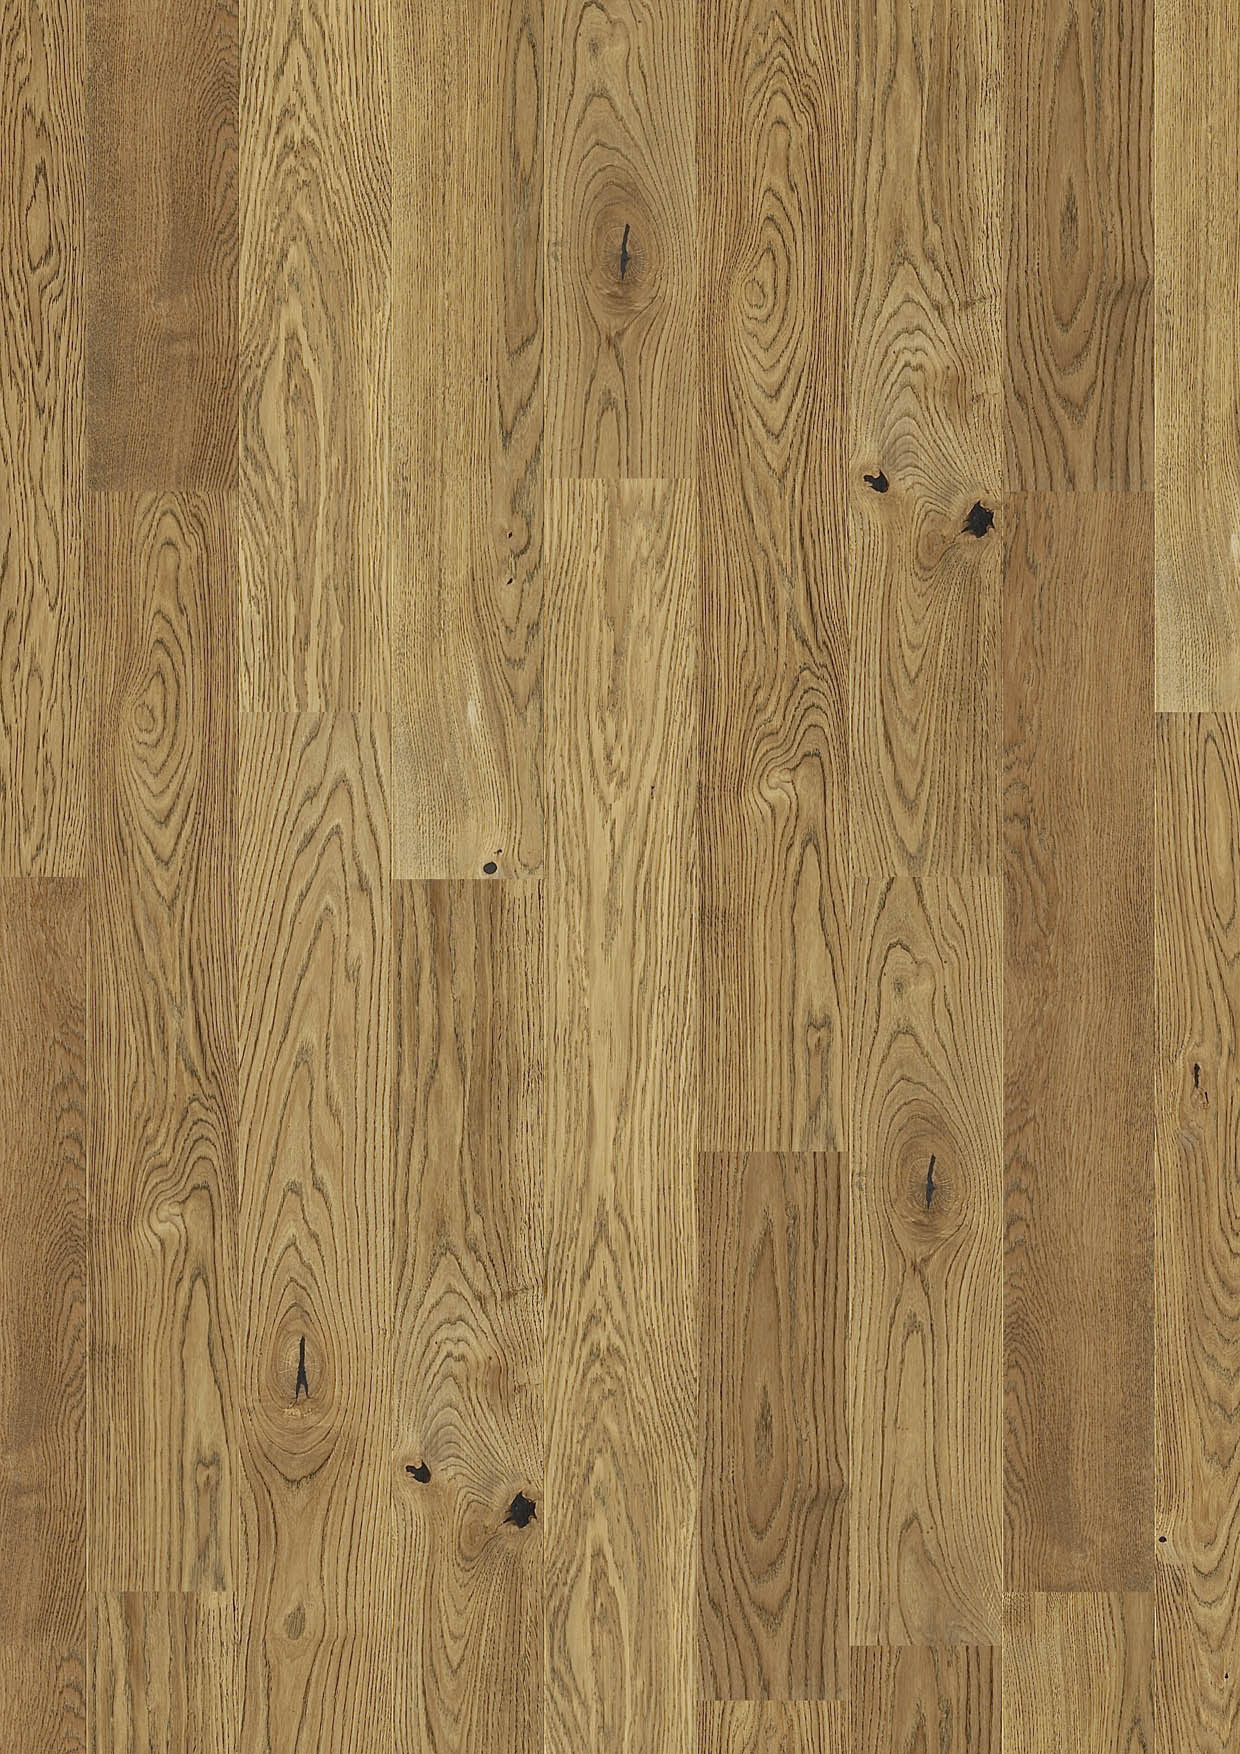 Boen Hardwood Flooring Usa Of Oak Alamo Plank Live Natural Oil 14 X 138 X 2200 Mm Regarding Oak Alamo